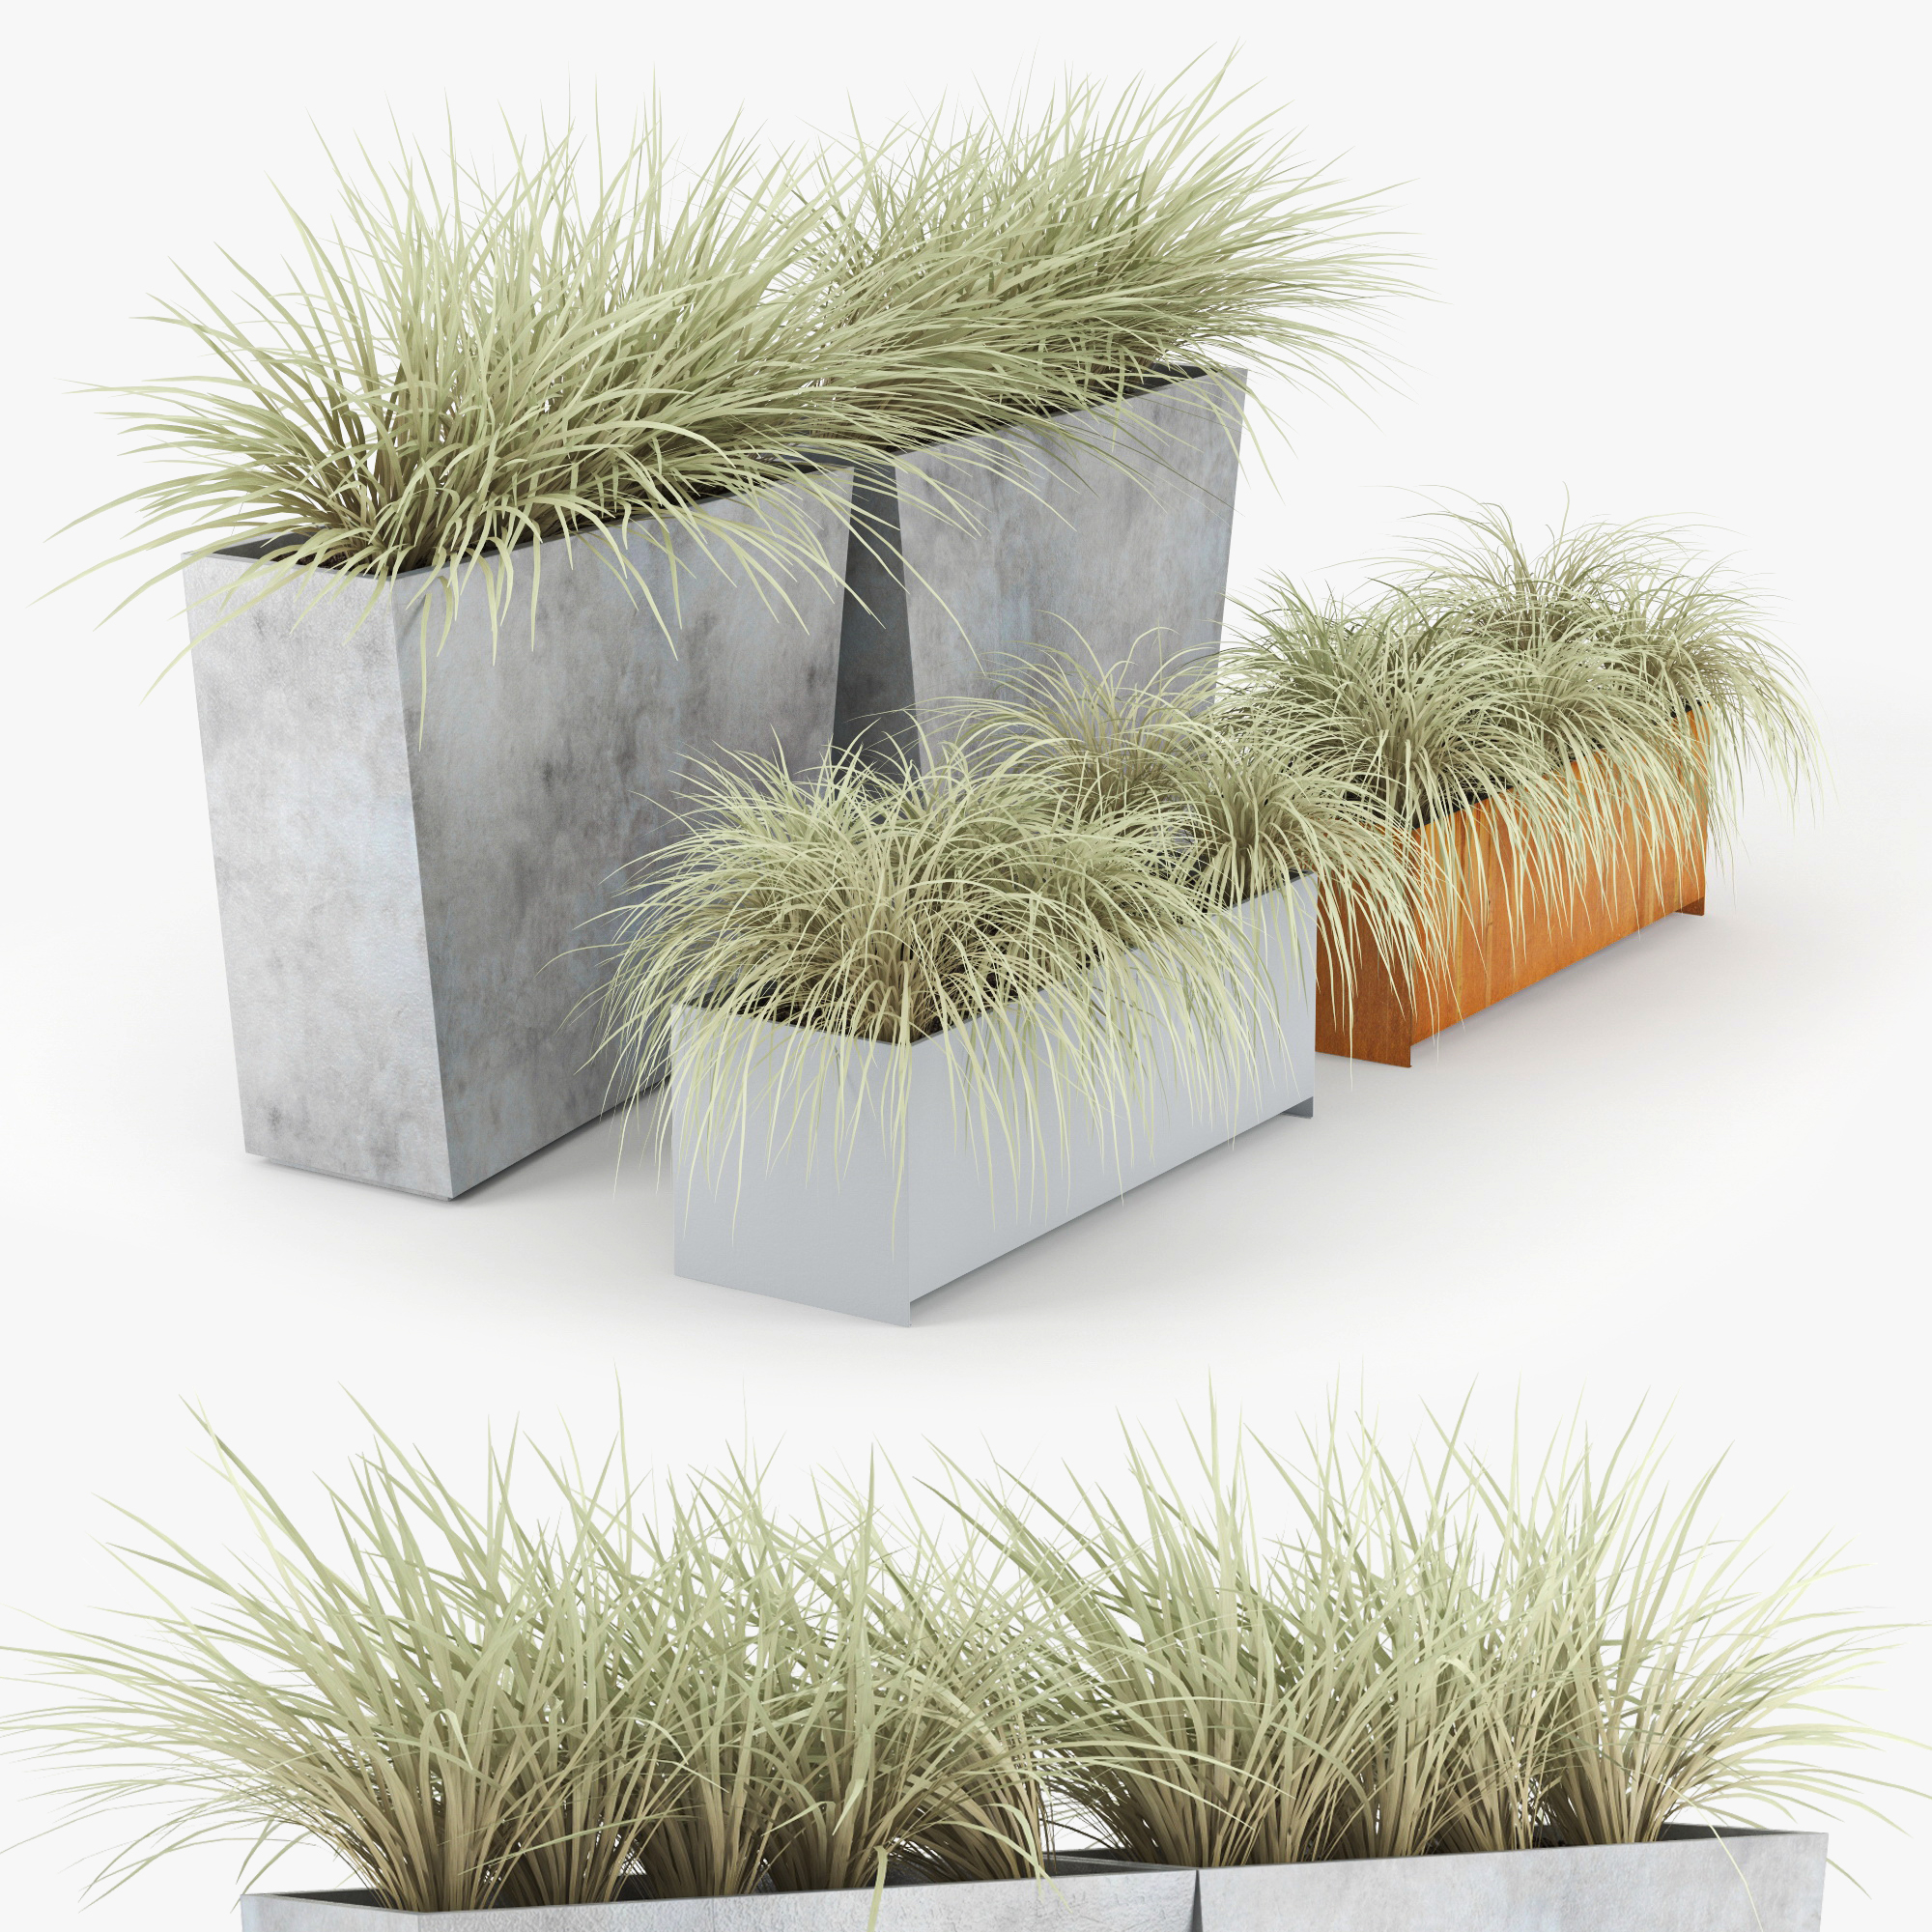 Twista Planter Modern Plant 3d Model Turbosquid 1307662